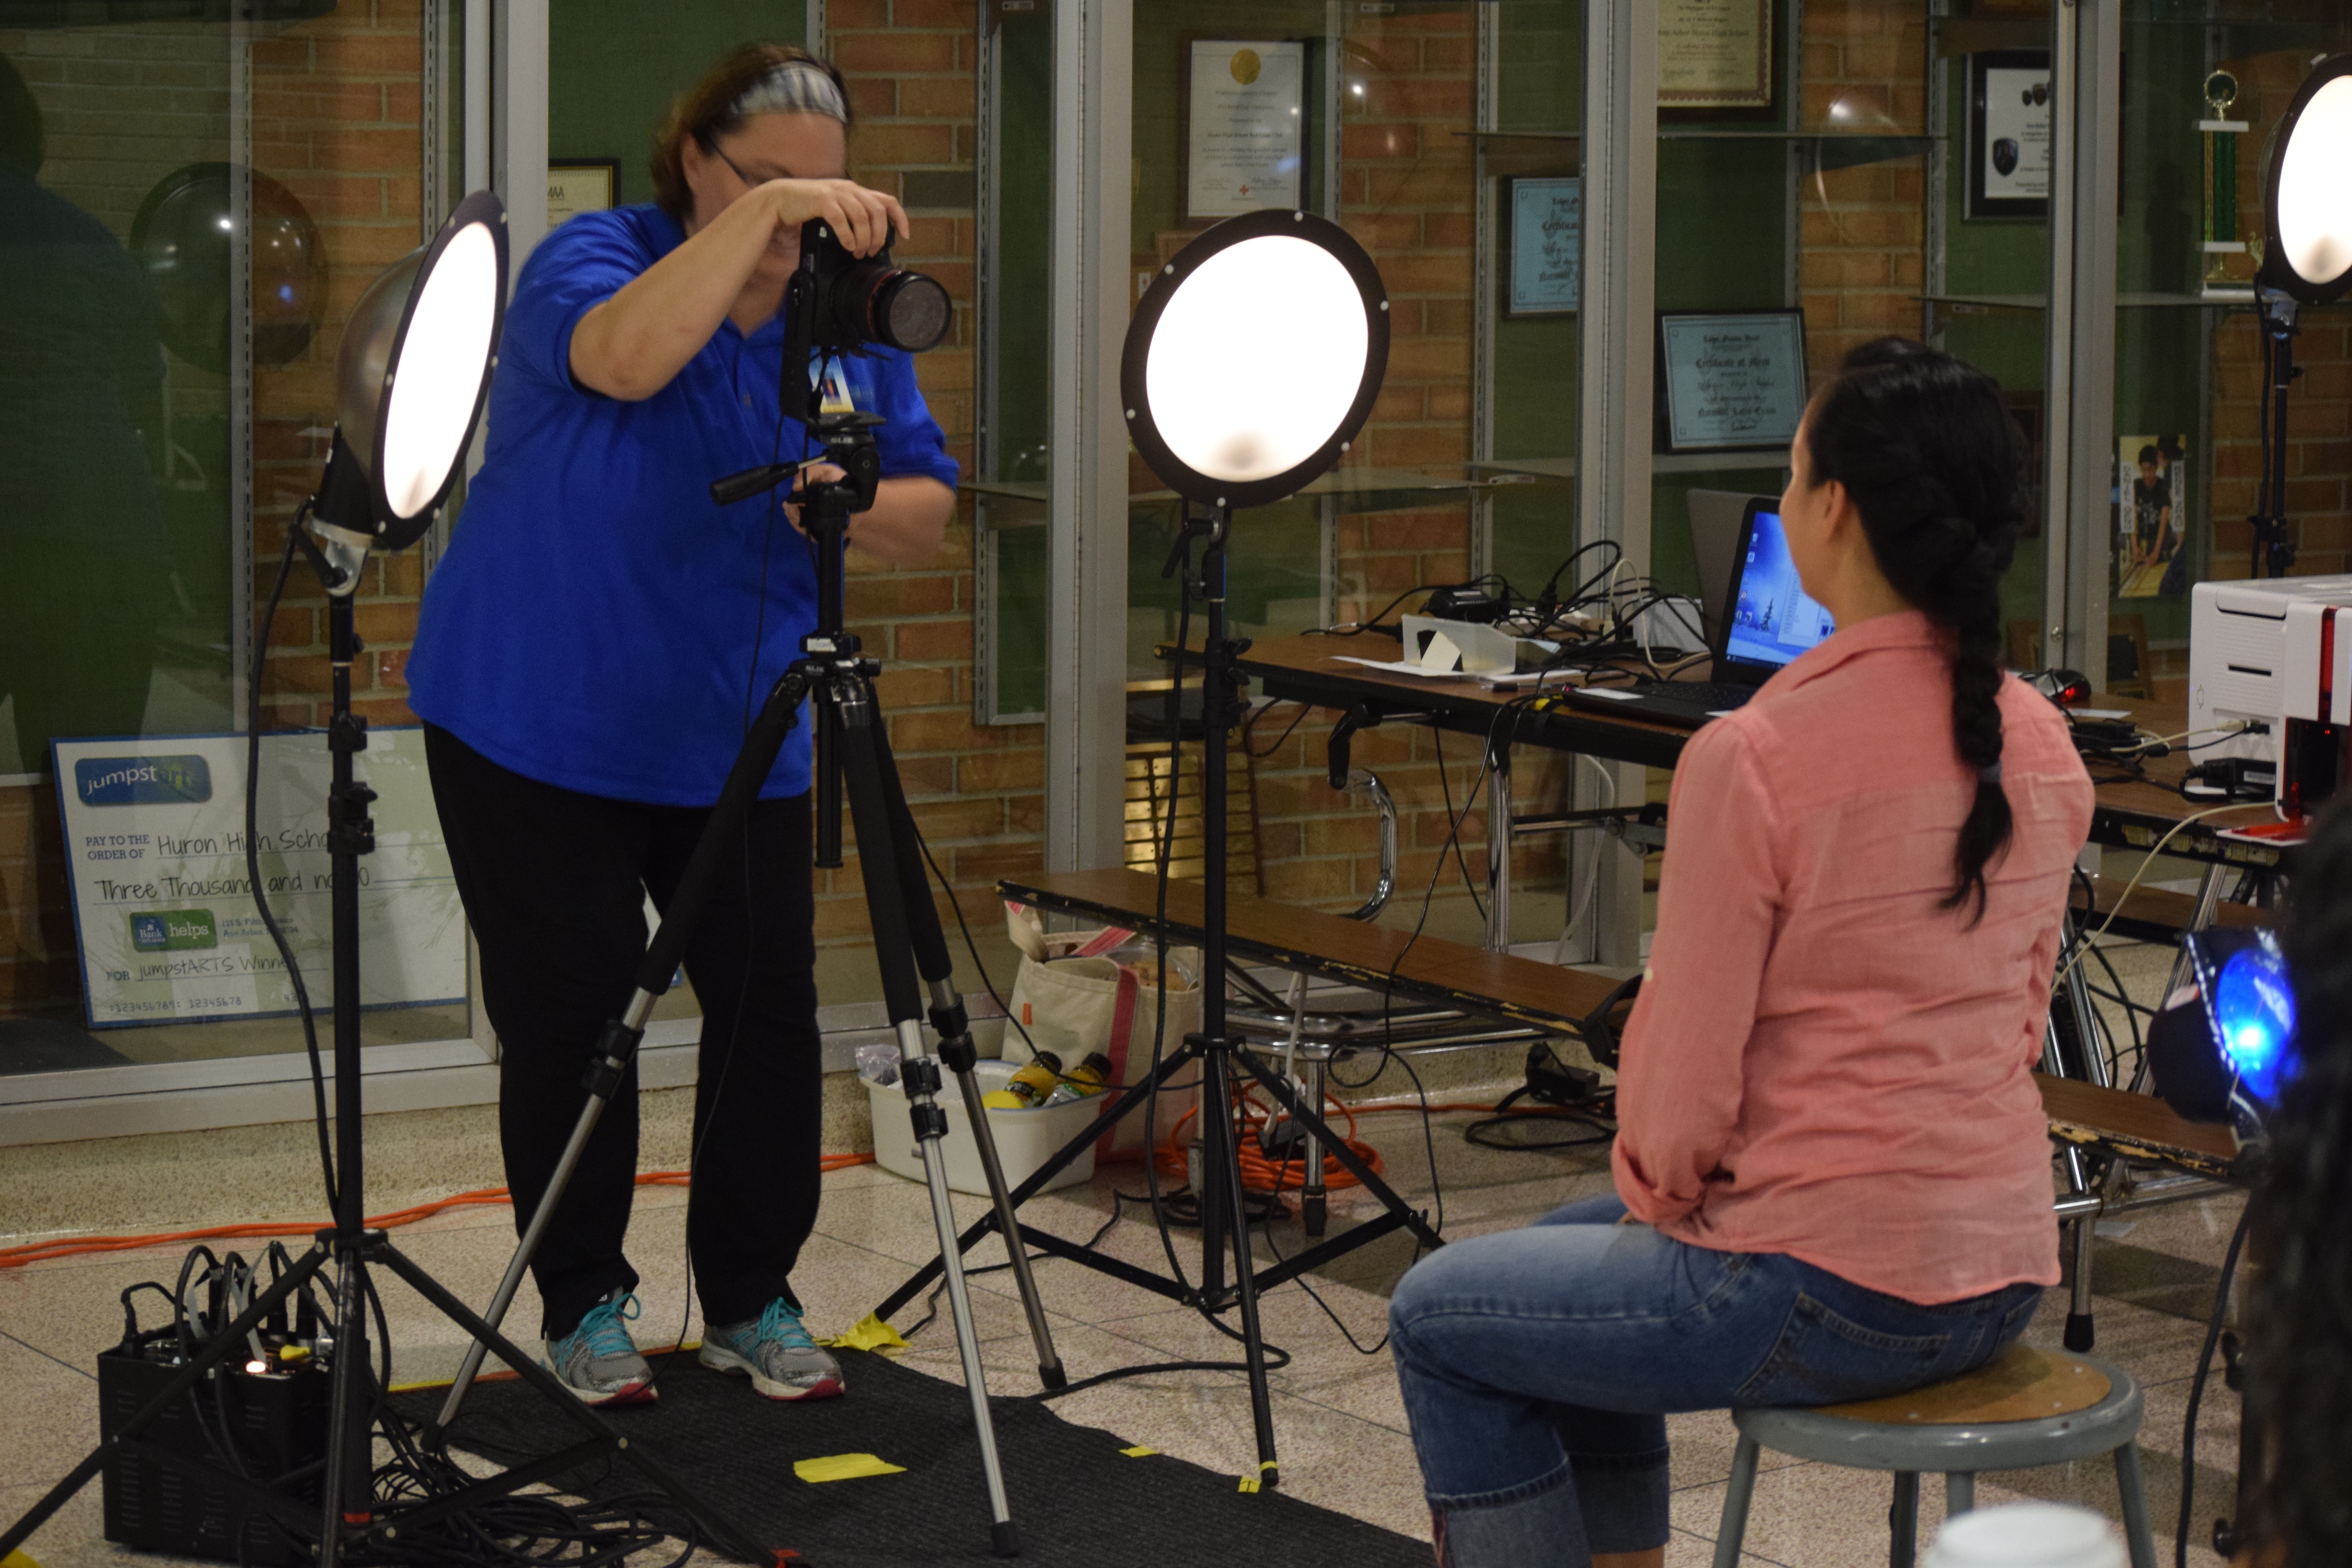 A photographer behind a camera next to bright lights is taking a photo of a female Huron staff member